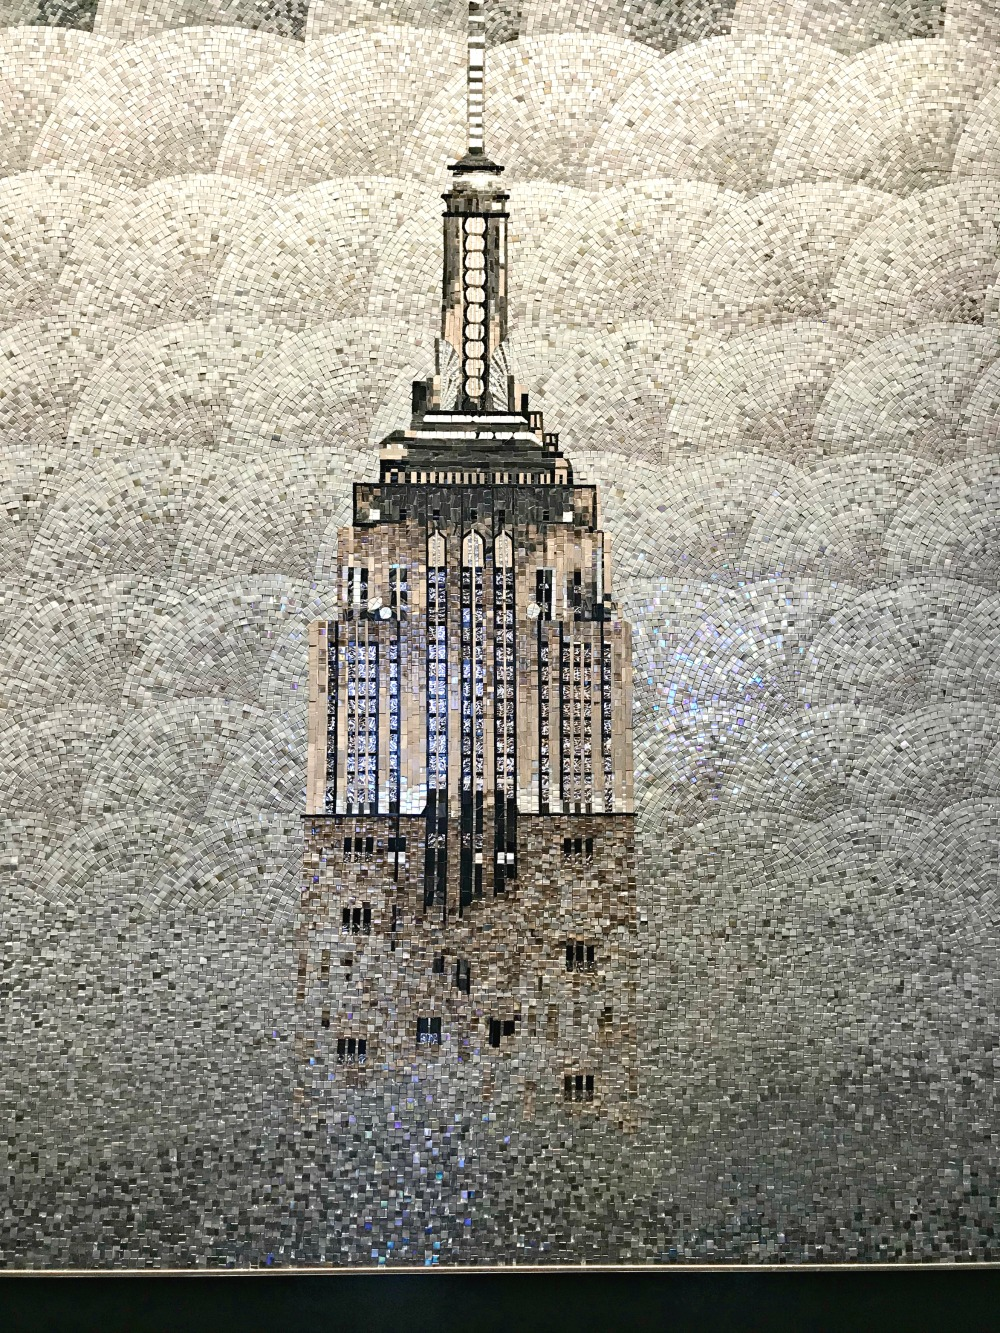 The Empire State Building in tiles